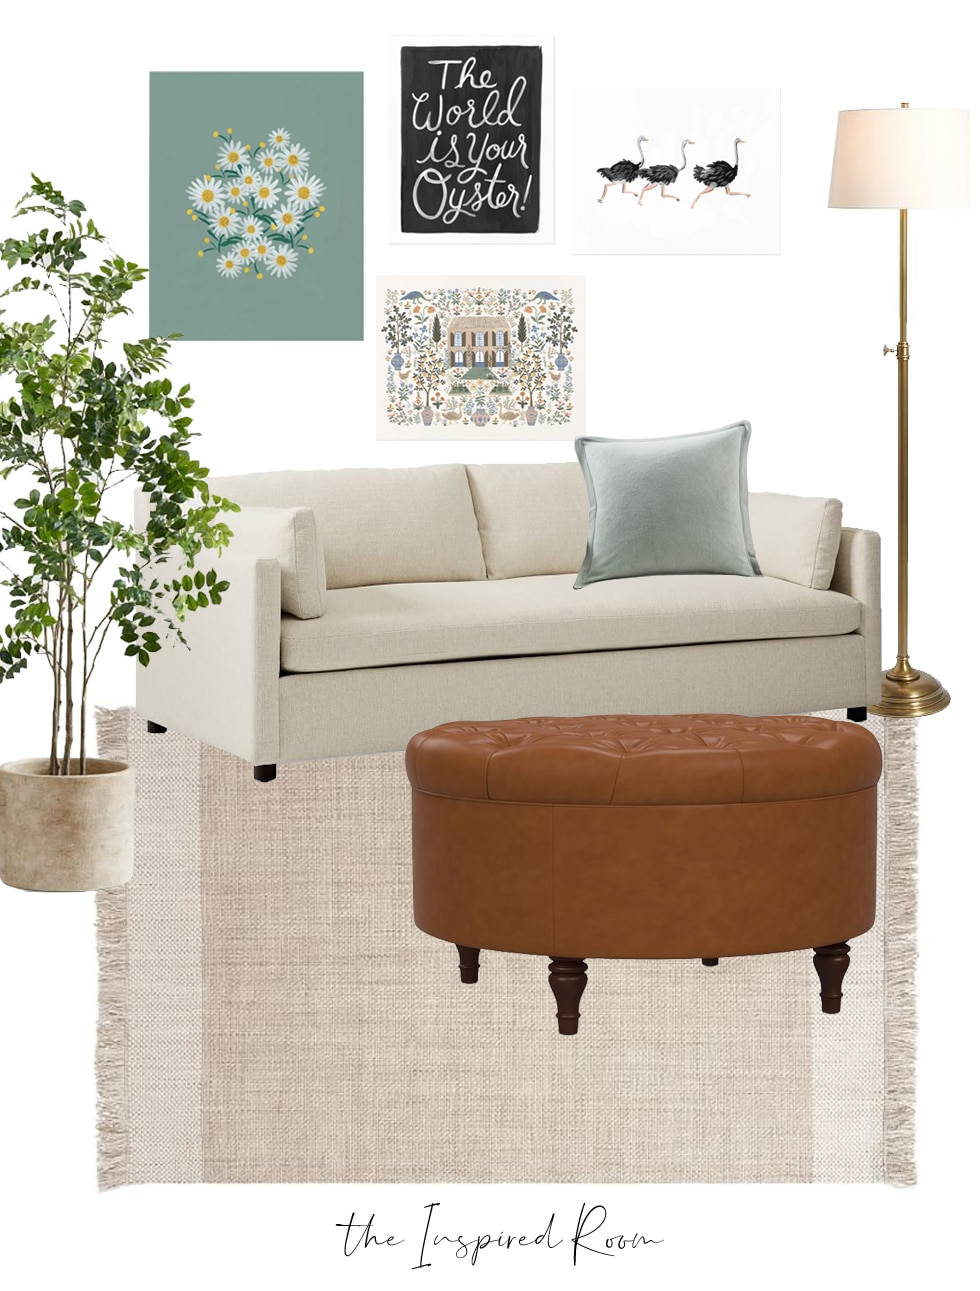 3 Common Decorating Mistakes When Displaying Art (+ Mood Boards + Buy One, Get Free Art Print)